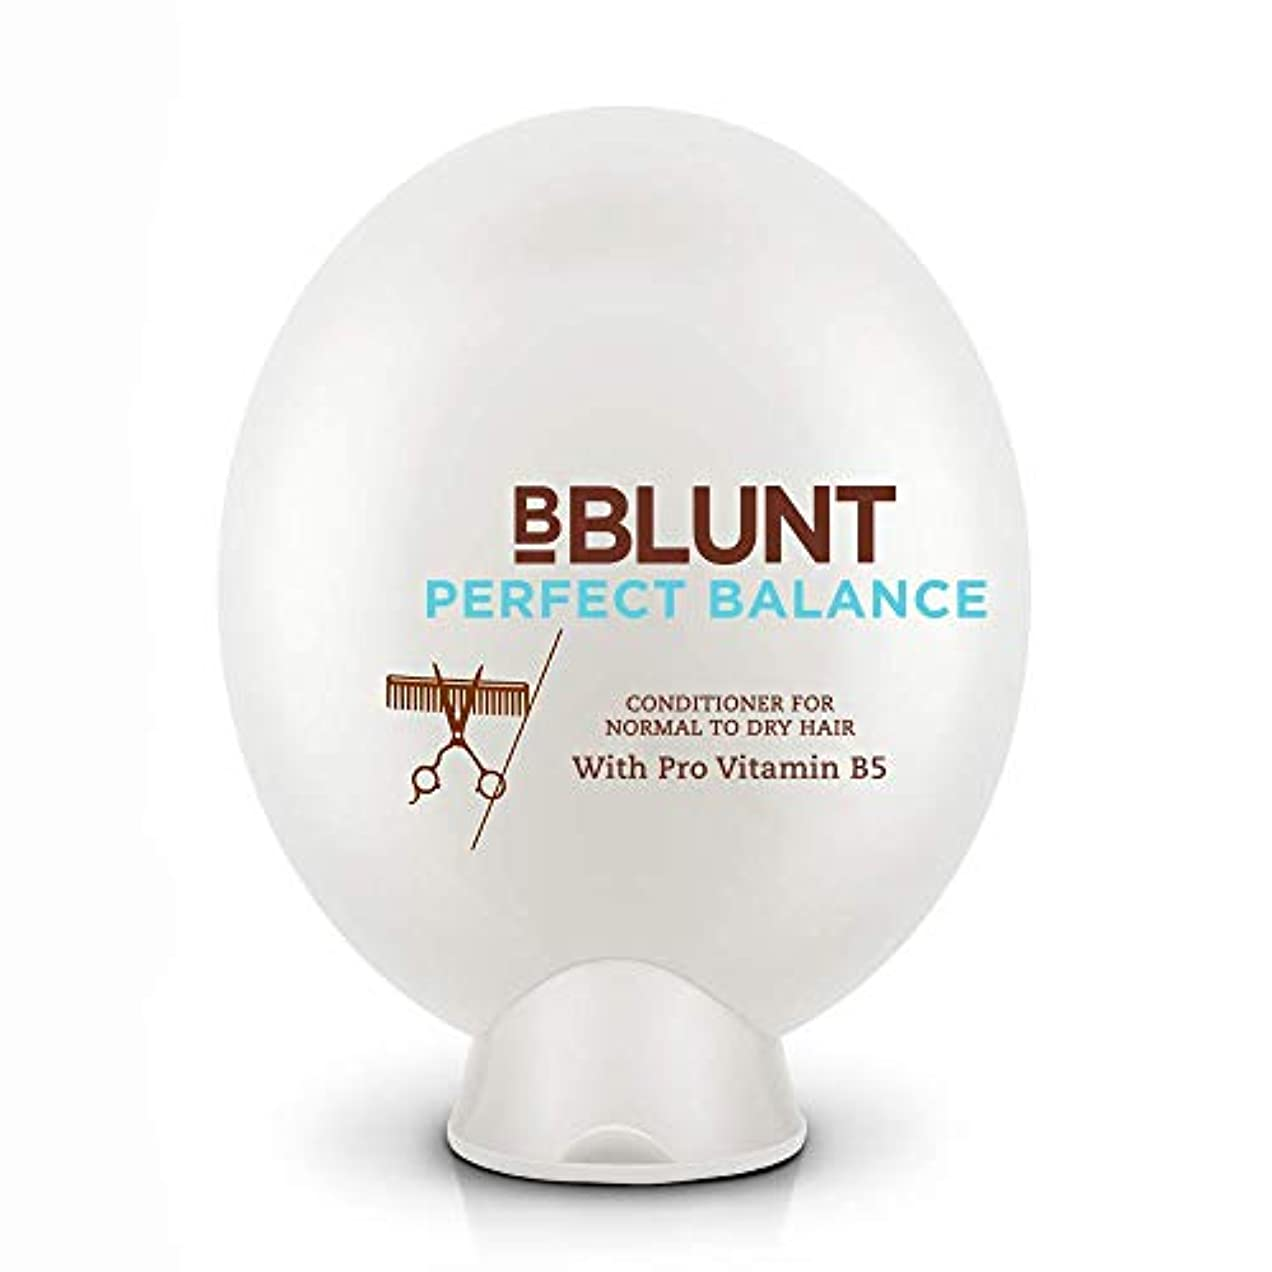 スクラップ句読点ブレースBBLUNT Perfect Balance Conditioner for Normal To Dry Hair, 200g (Provitamin B5)